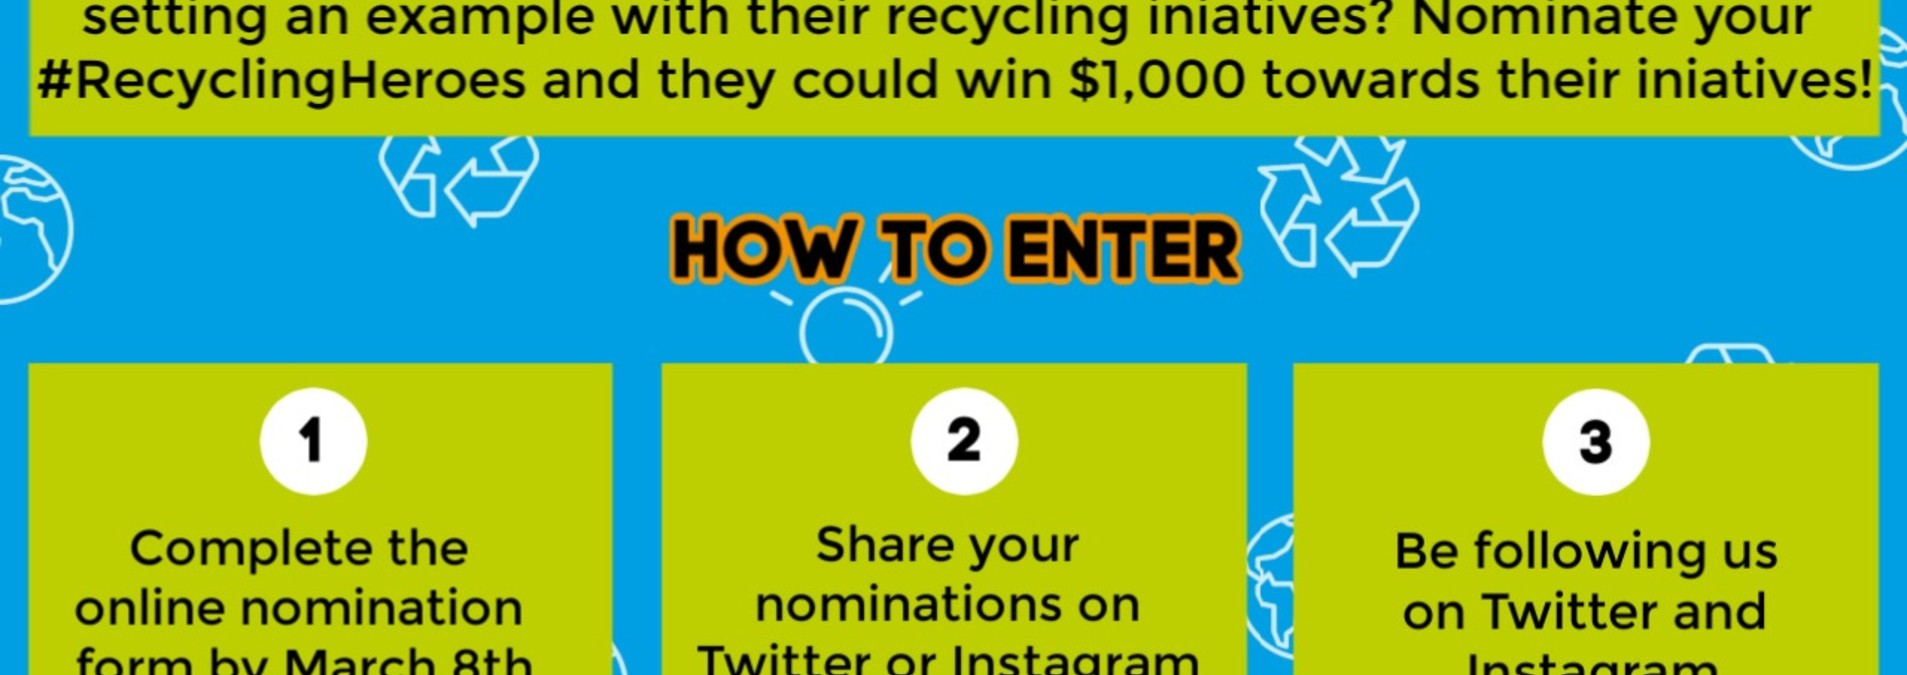 The Global Recycling Foundation wants you to nominate your # ... Image 1